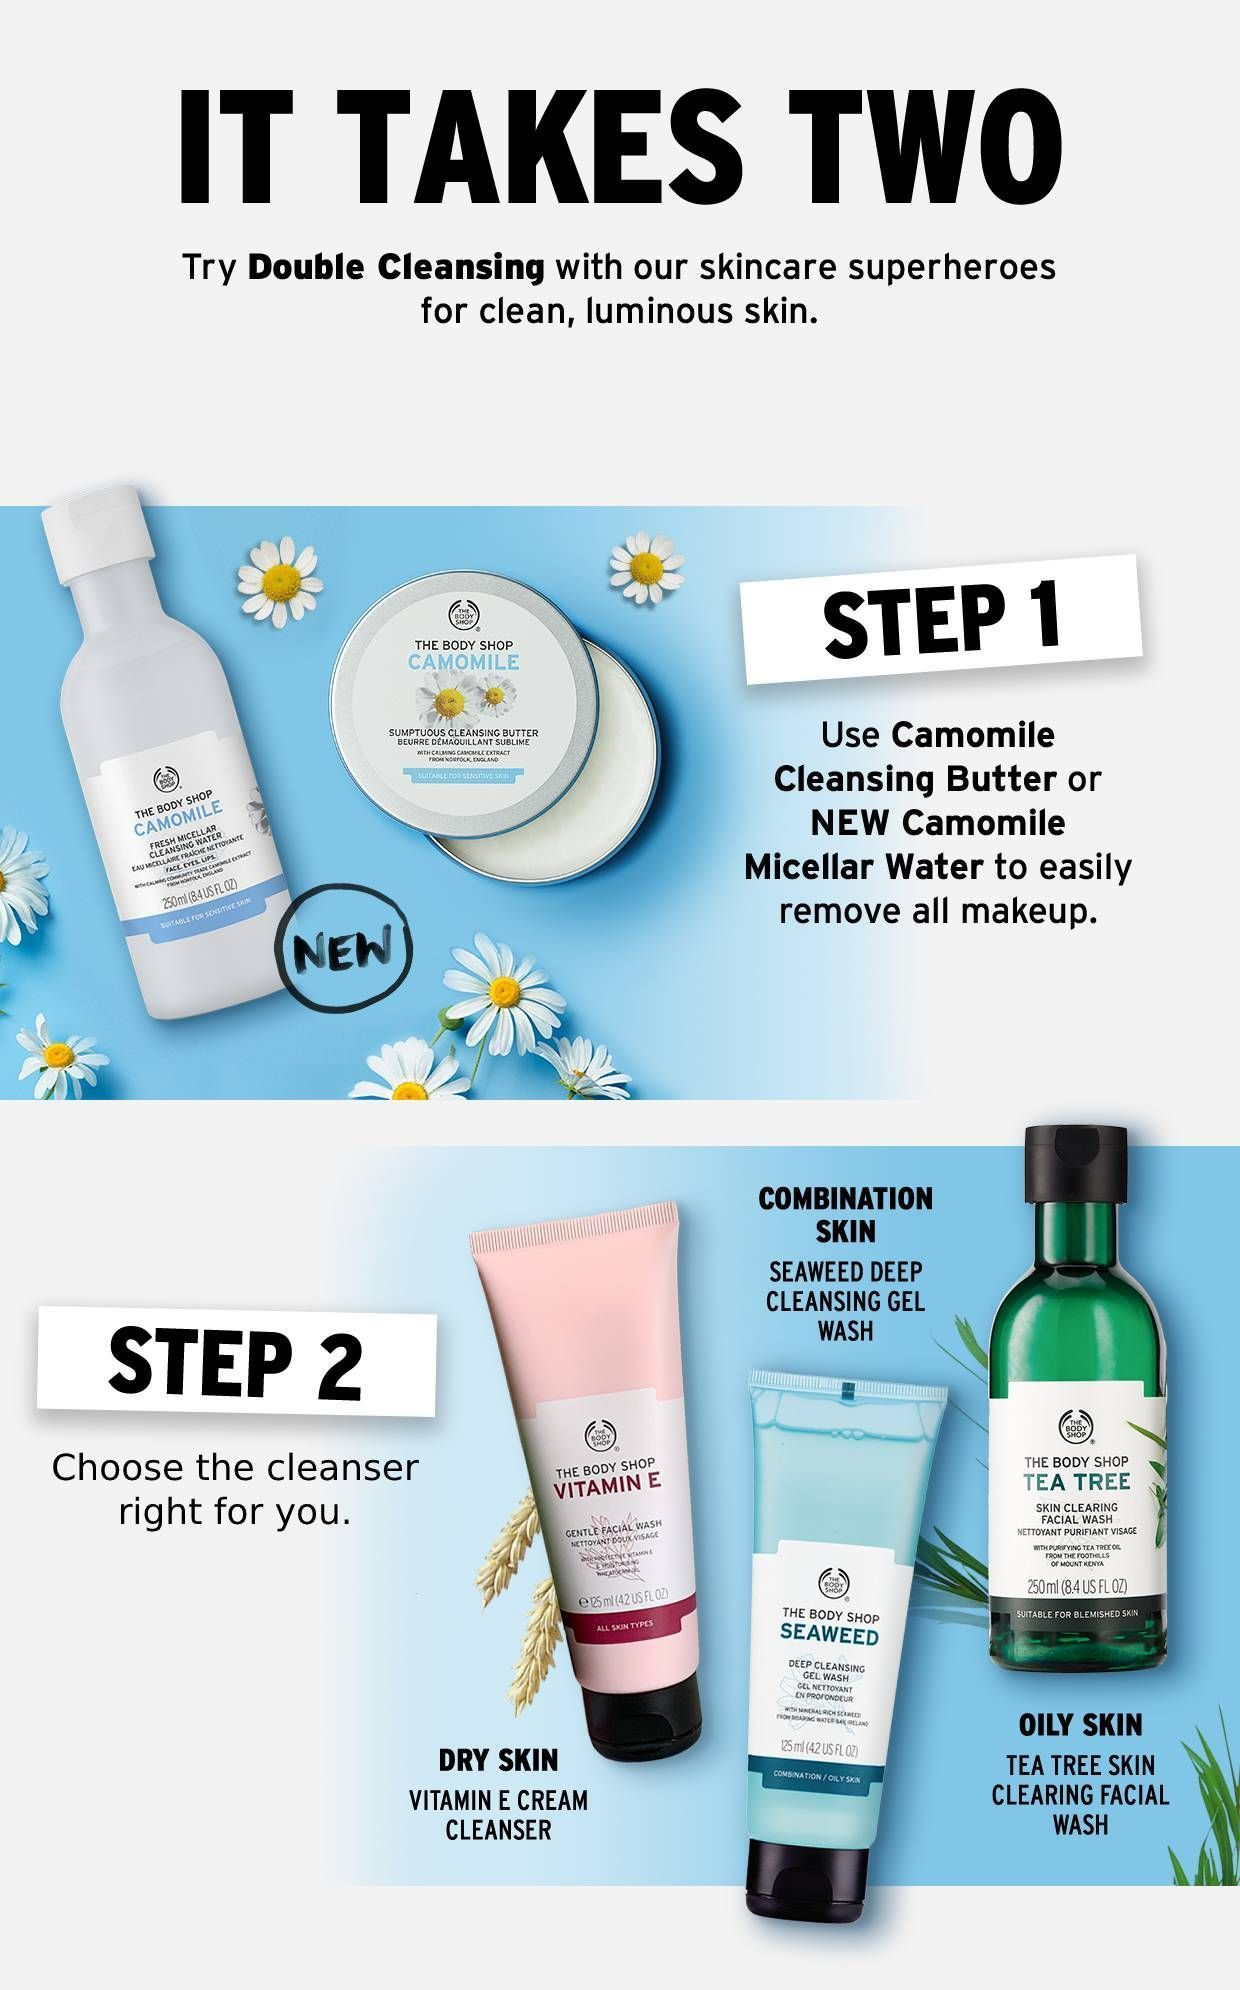 Double Cleansing Is Essential For Your Daily Skincare Routine Find Out More About This 2 Step Proces In 2020 Body Shop Skincare Daily Skin Care Routine Face Skin Care